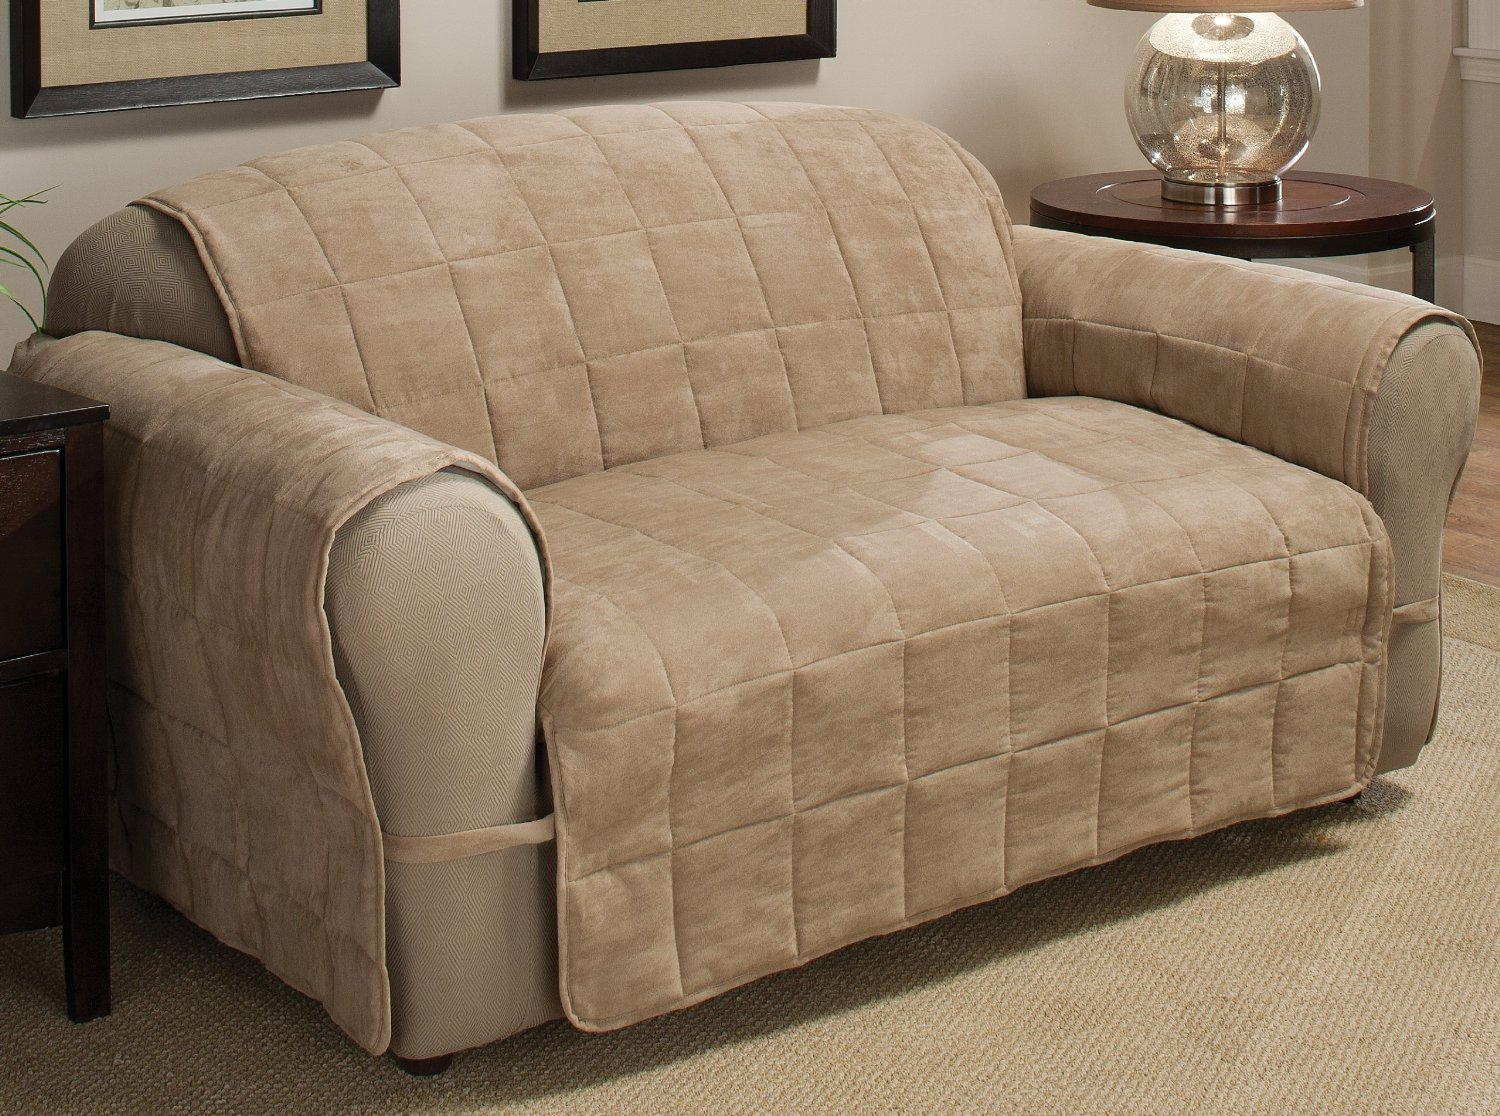 Decor Breathtaking Target Slipcovers For Chic Home Furniture Regarding Sofa And Chair Slipcovers (Image 3 of 15)